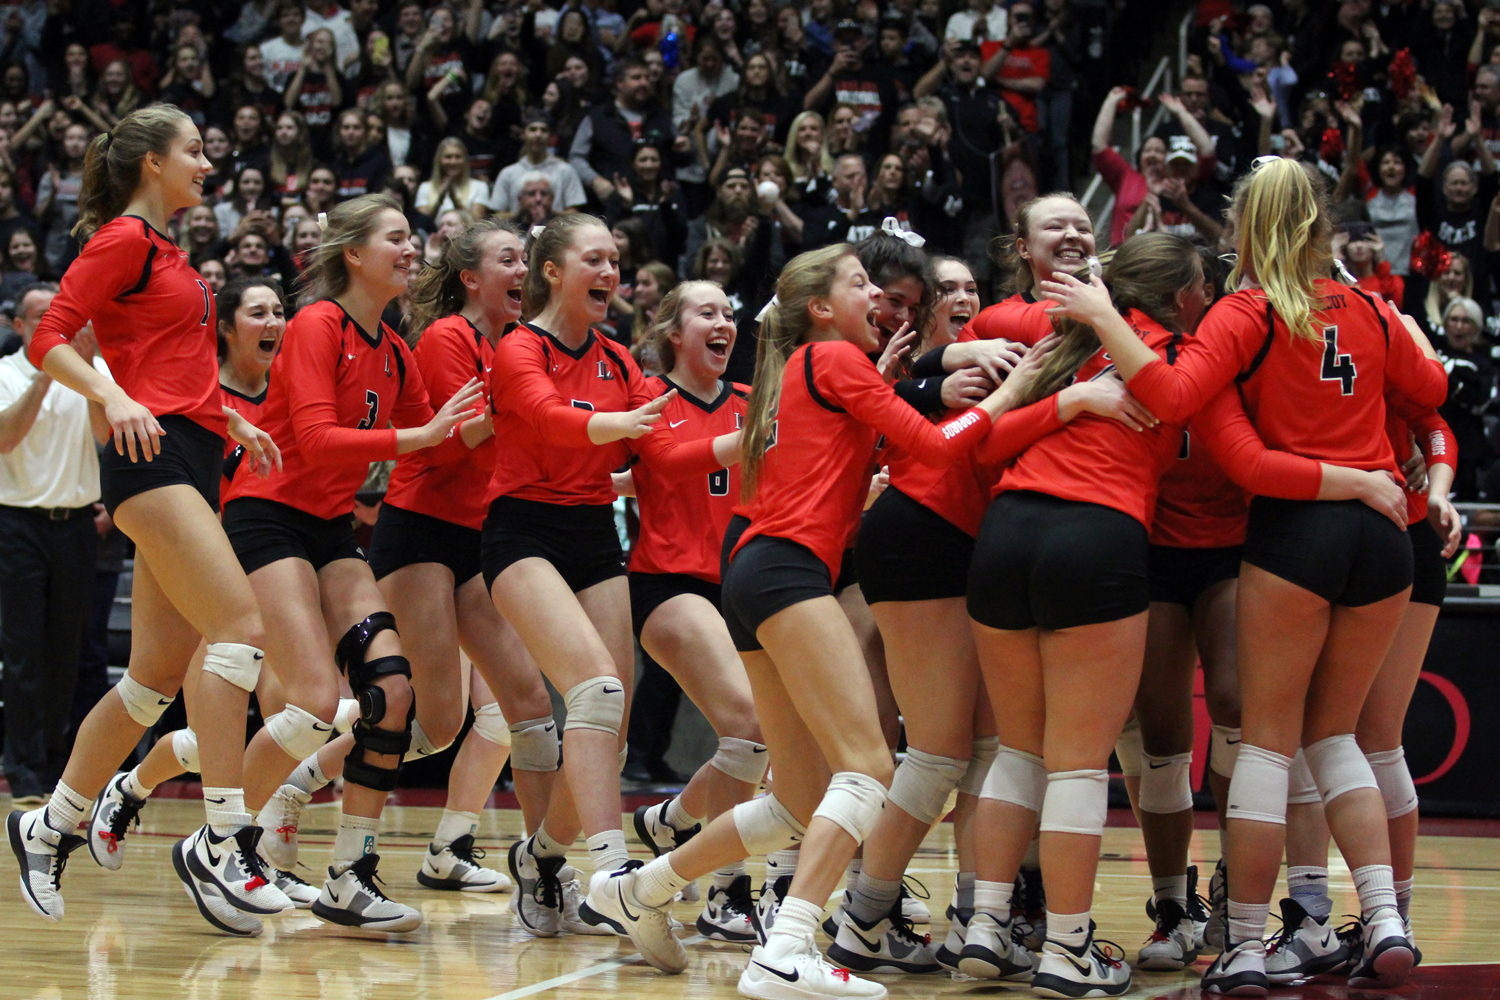 The Leopards celebrate on the court after winning their semi-final game against Dripping Springs Friday at the Curtis Culwell Center in Garland.